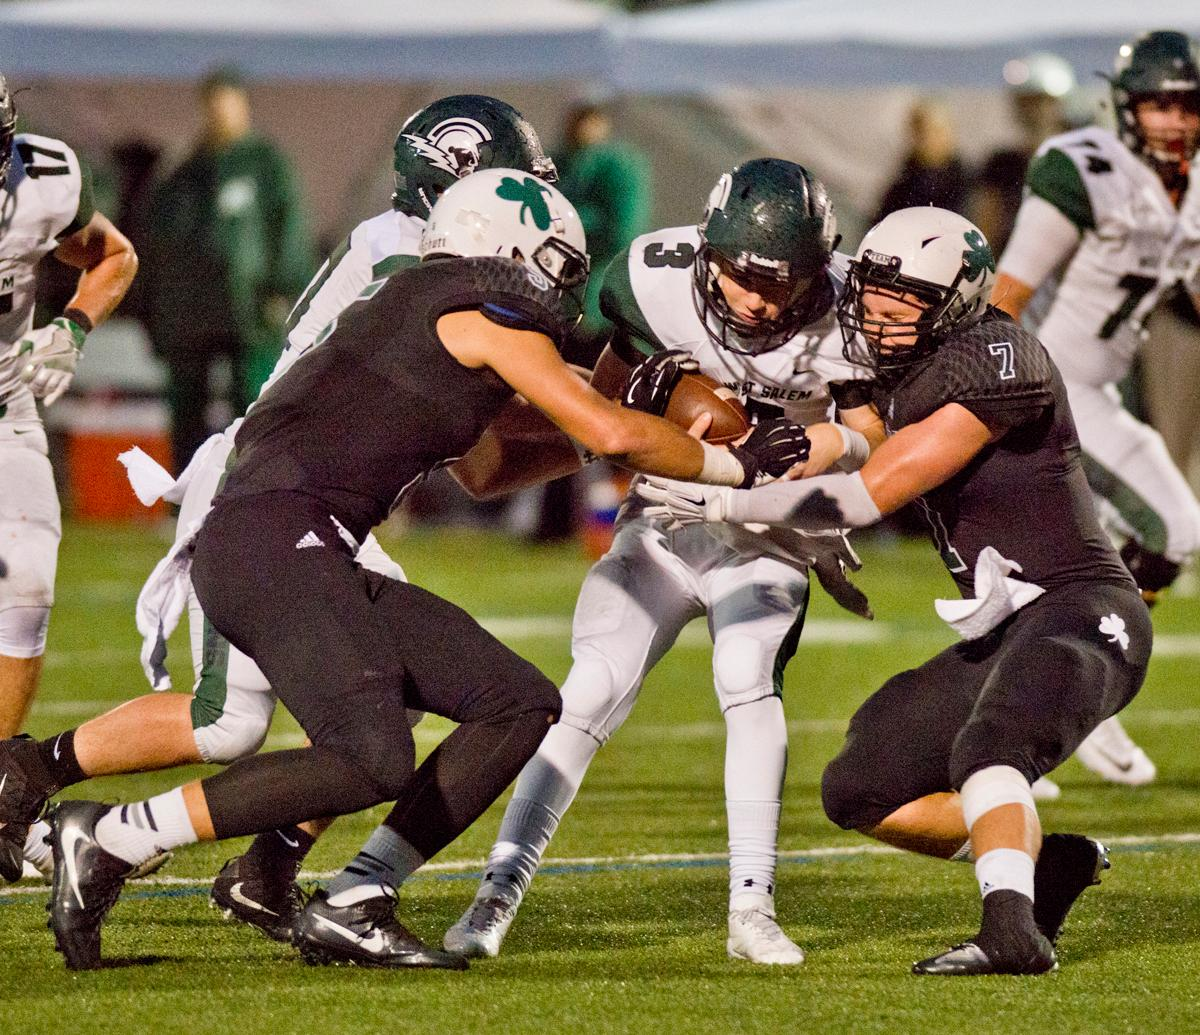 West Salem Titans quarterback Grant Thies (#3) is tackled by Sheldon Irish linebacker Jaren Banks (#7). On a rainy Monday evening Sheldon defeated West Salem 41-7. The game had been postponed from Friday due to unhealthy levels of smoke in the atmosphere due to nearby forest fires. Photo by Dan Morrison, Oregon News Lab